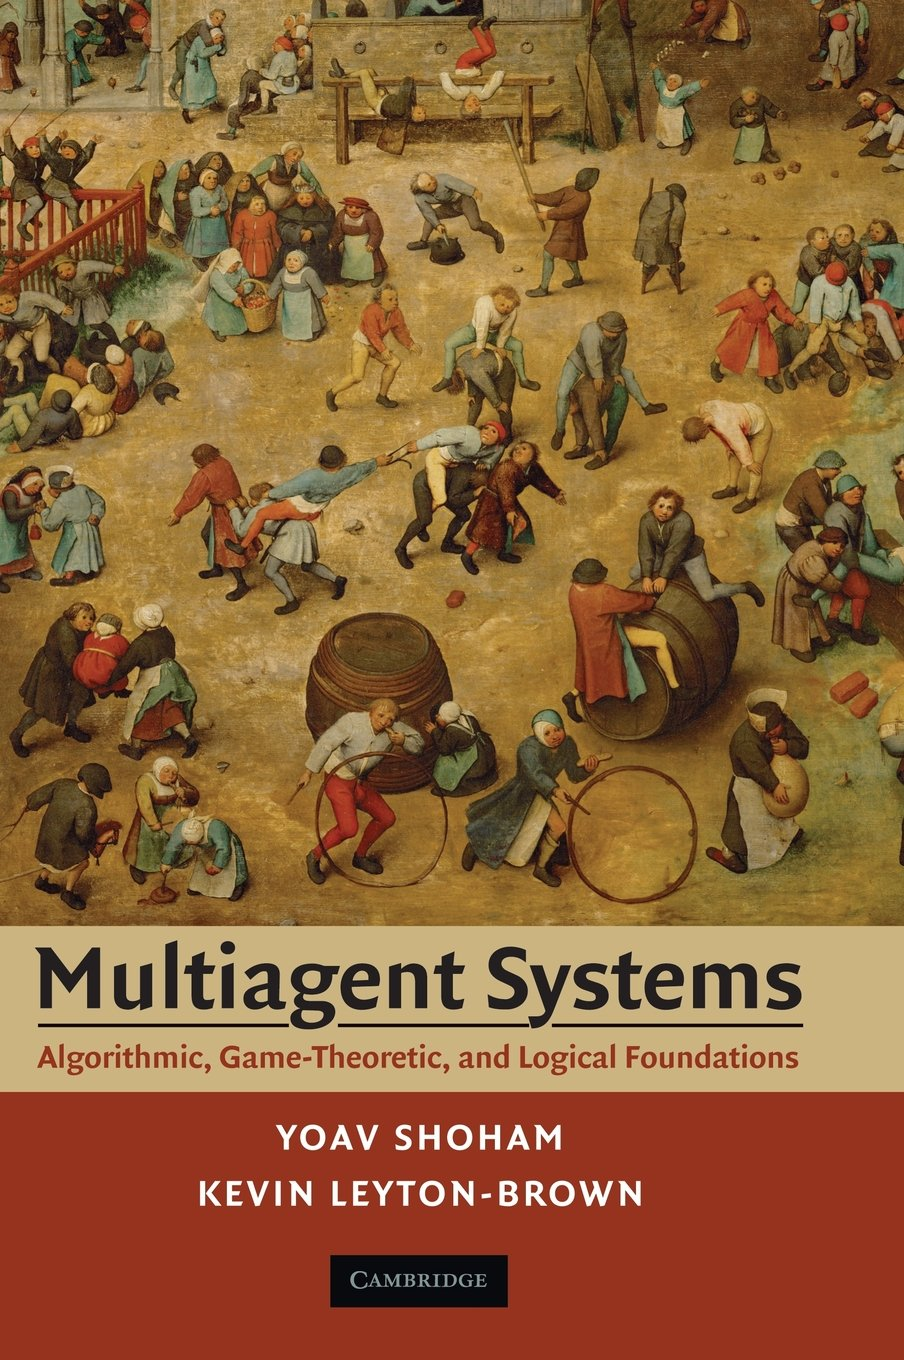 Multiagent Systems: Algorithmic, Game-Theoretic, and Logical Foundations by Cambridge University Press